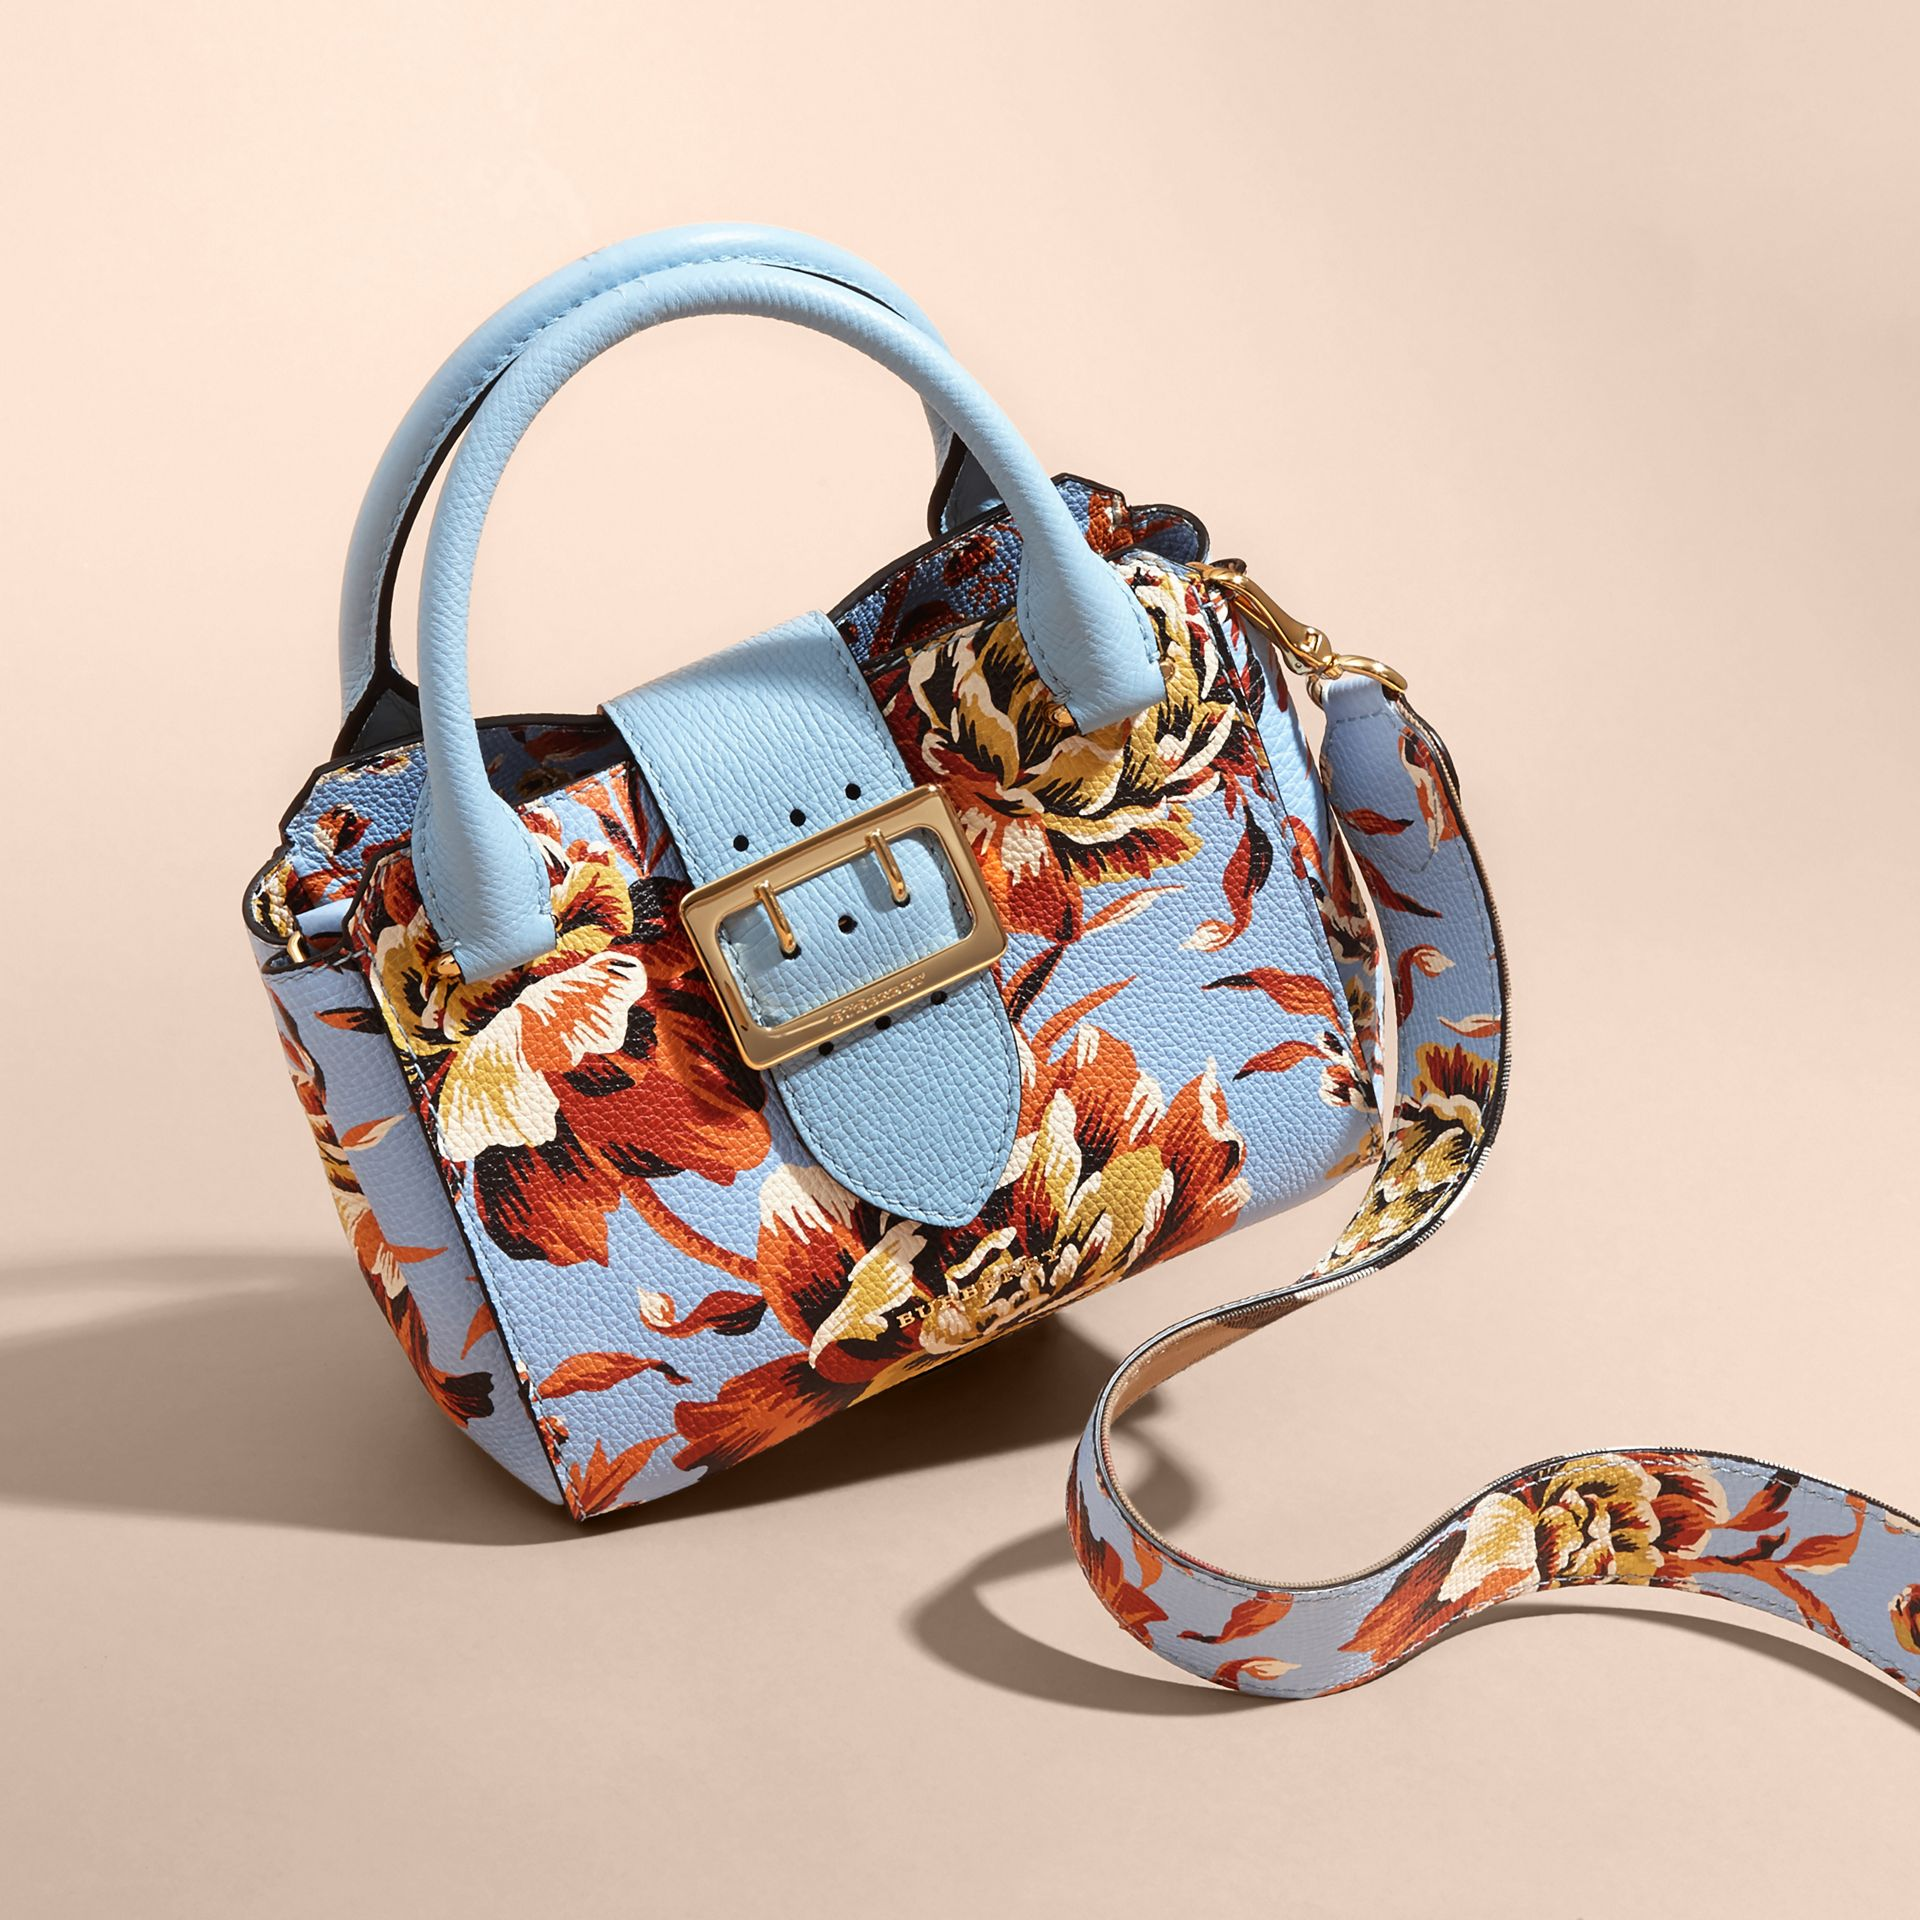 Pale blue/vibrant orange The Small Buckle Tote in Peony Rose Print Leather Pale Blue/vibrant Orange - gallery image 8